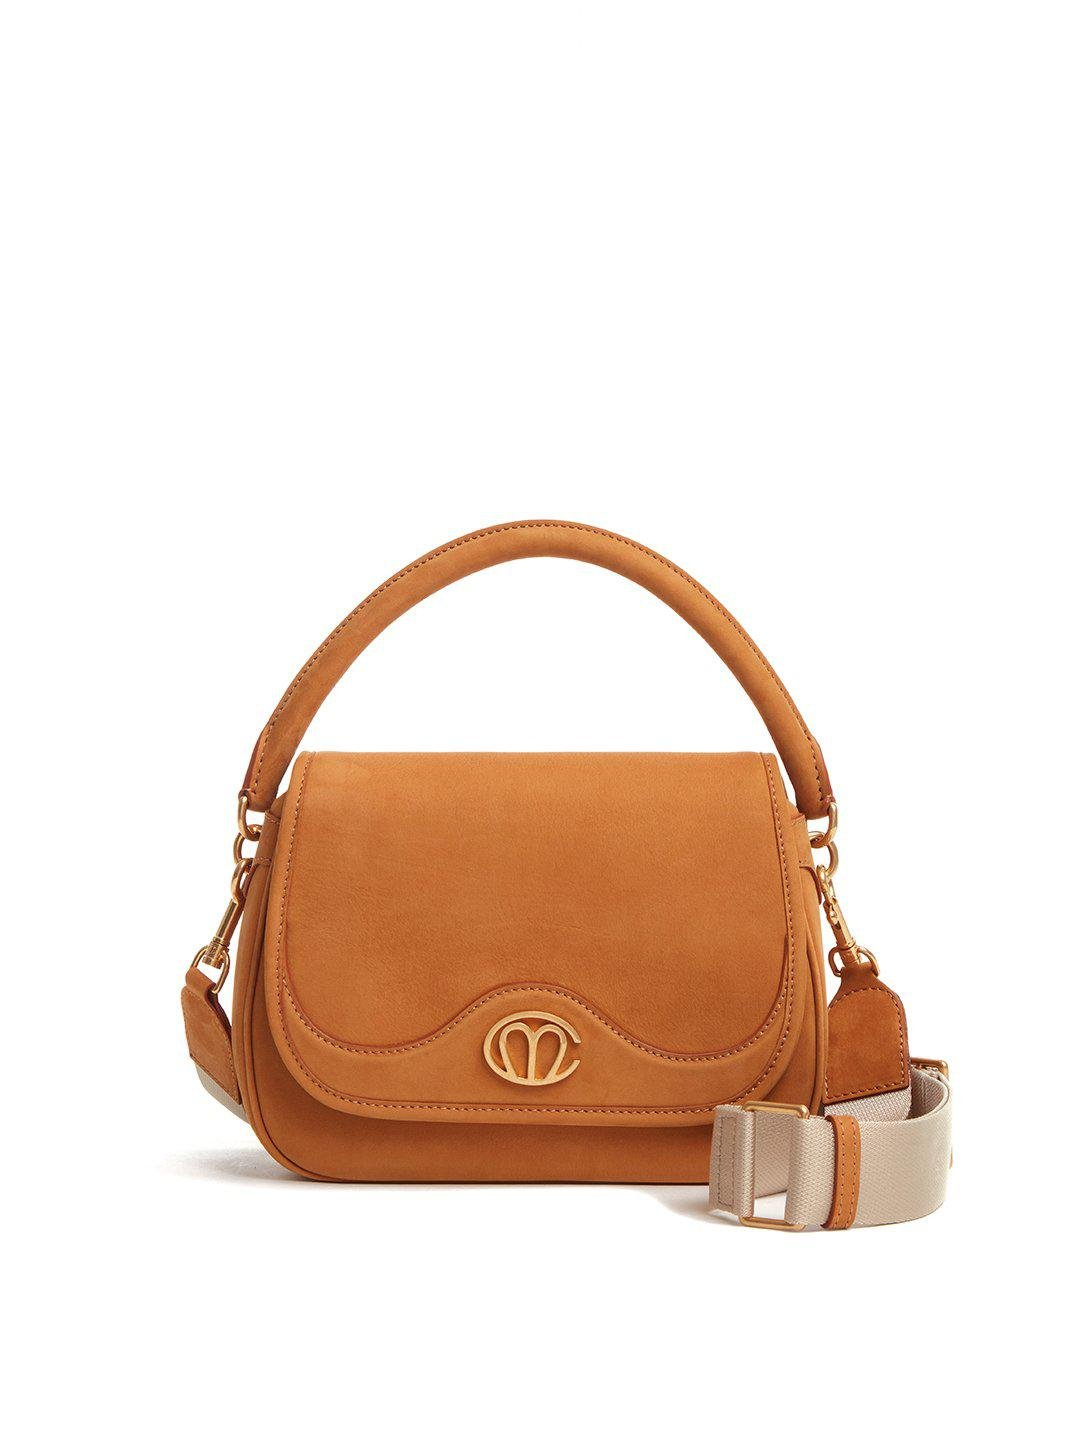 Christy Small Leather Top Handle Bag